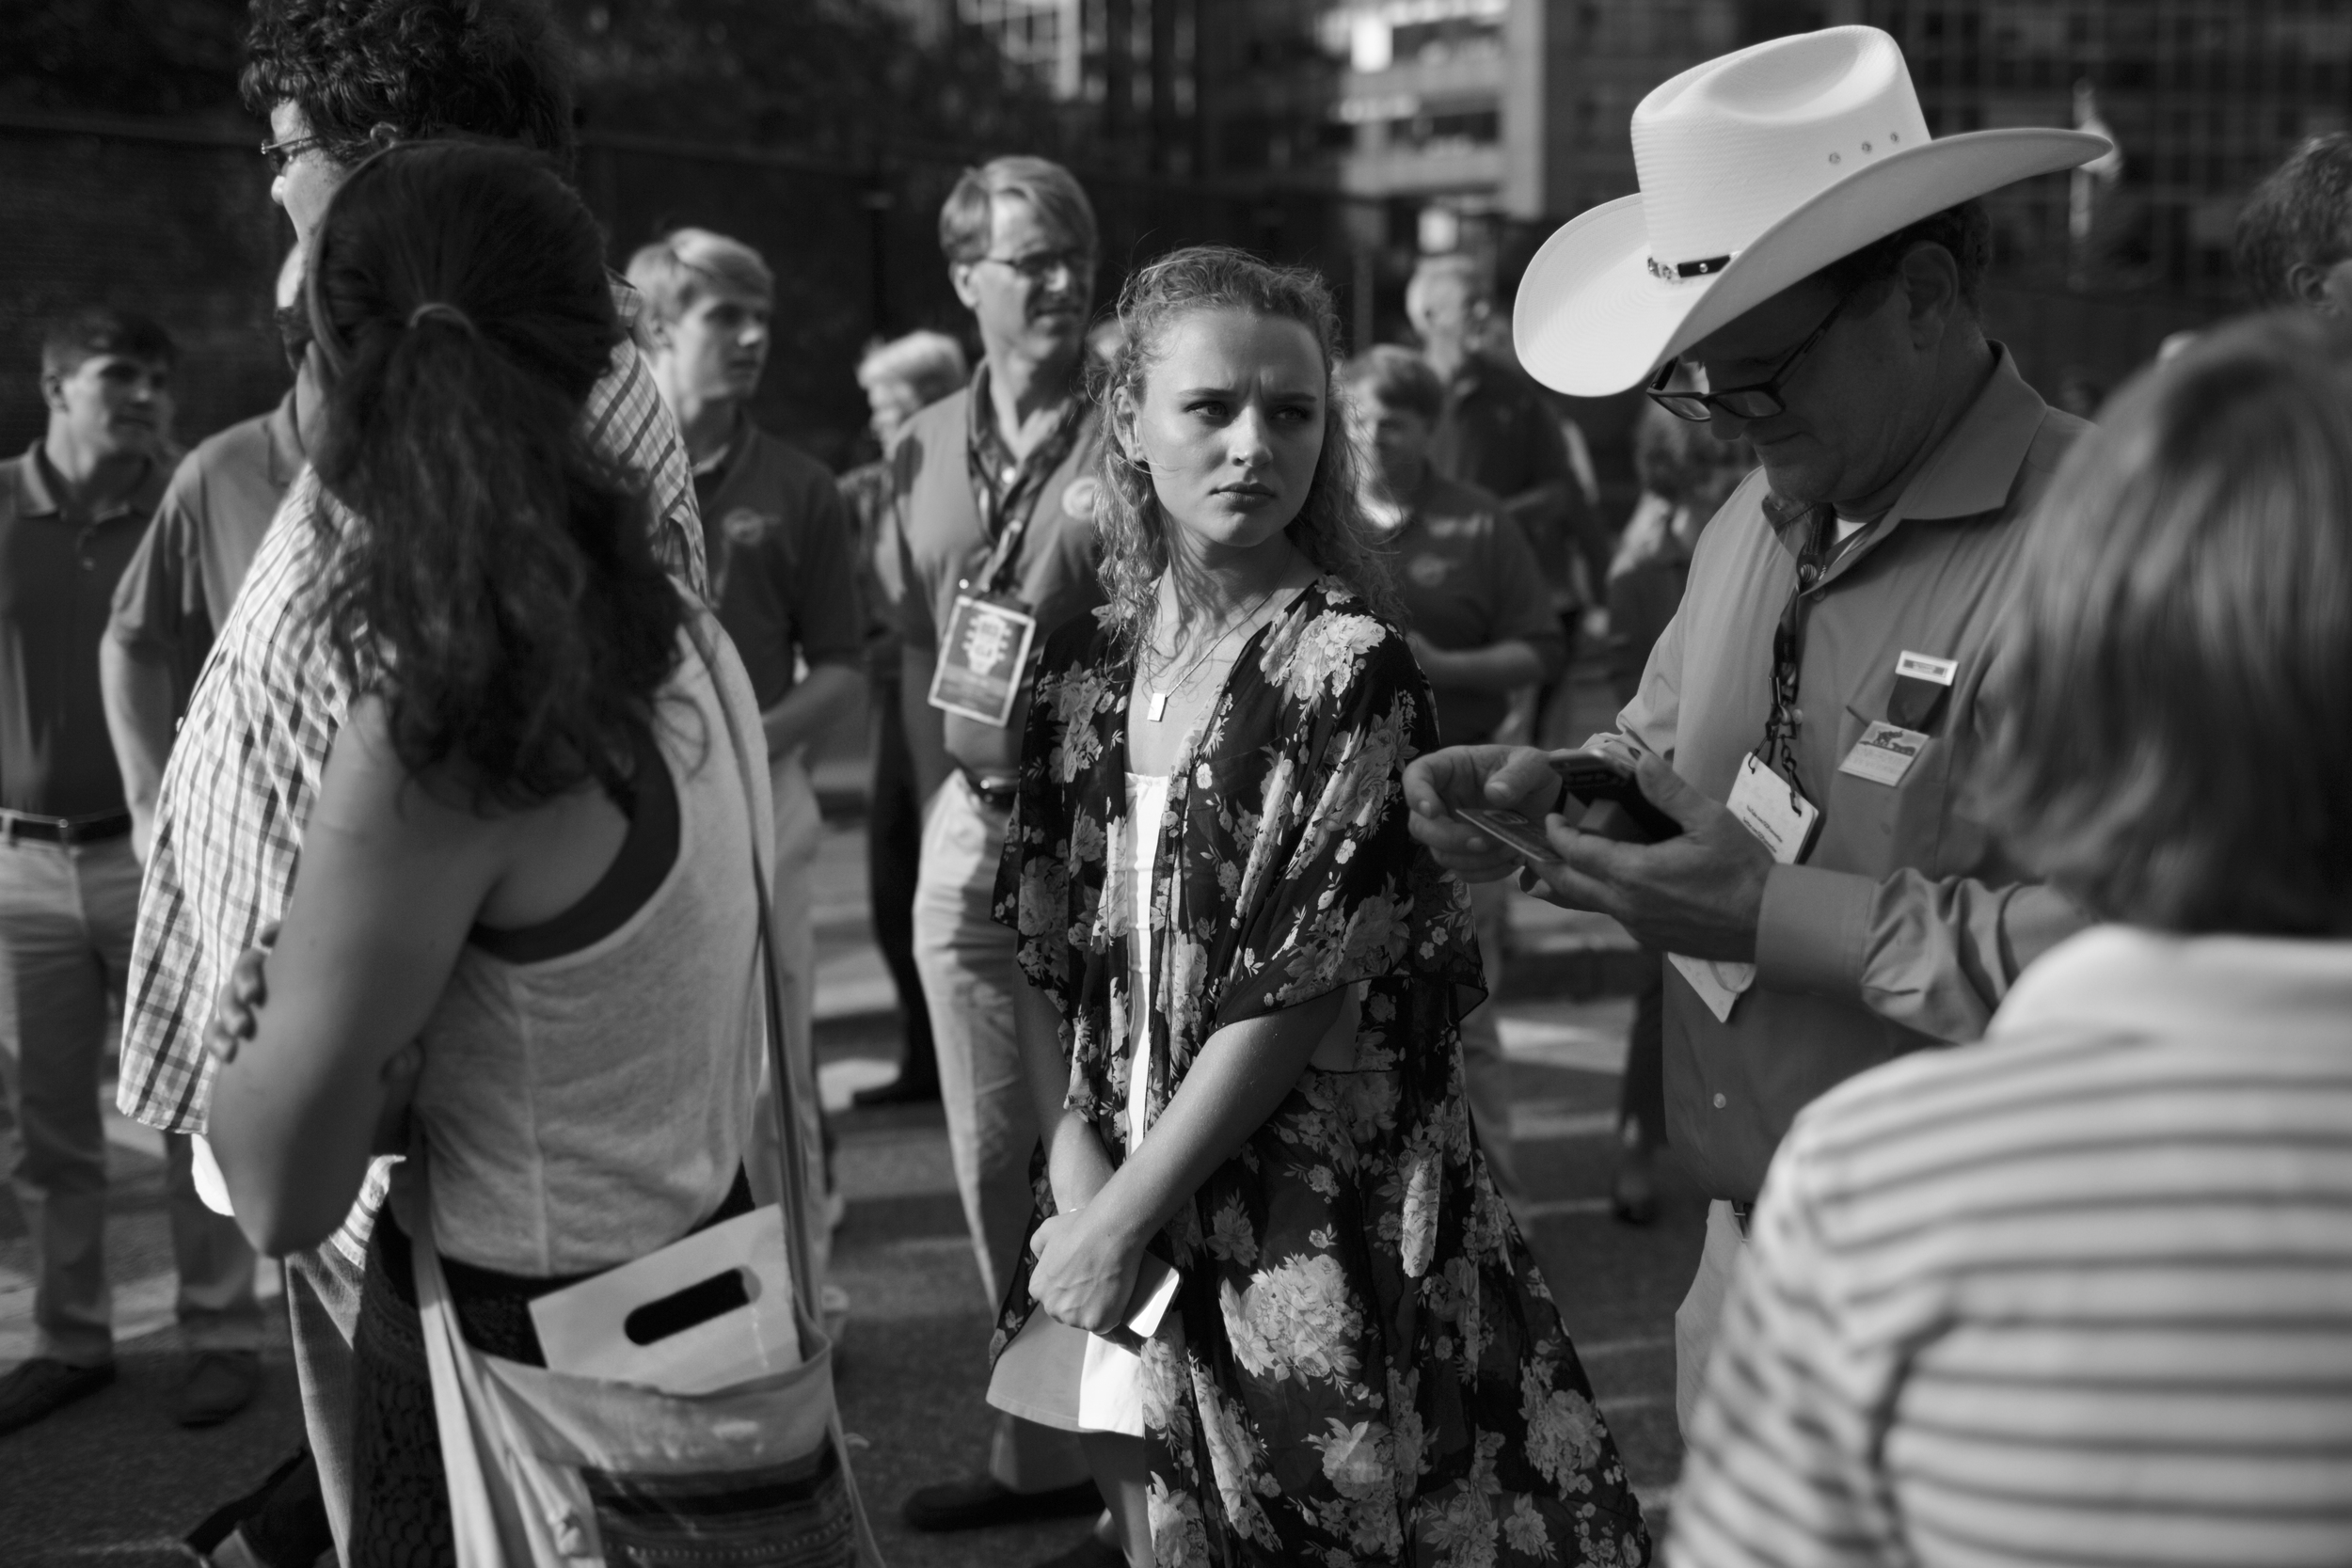 17 July 2016 - Cleveland, Ohio - Guests are attending a Welcome Party one day ahead of the Republican National Convention North Coast Harbor.Photo: Cédric von Niederhäusern